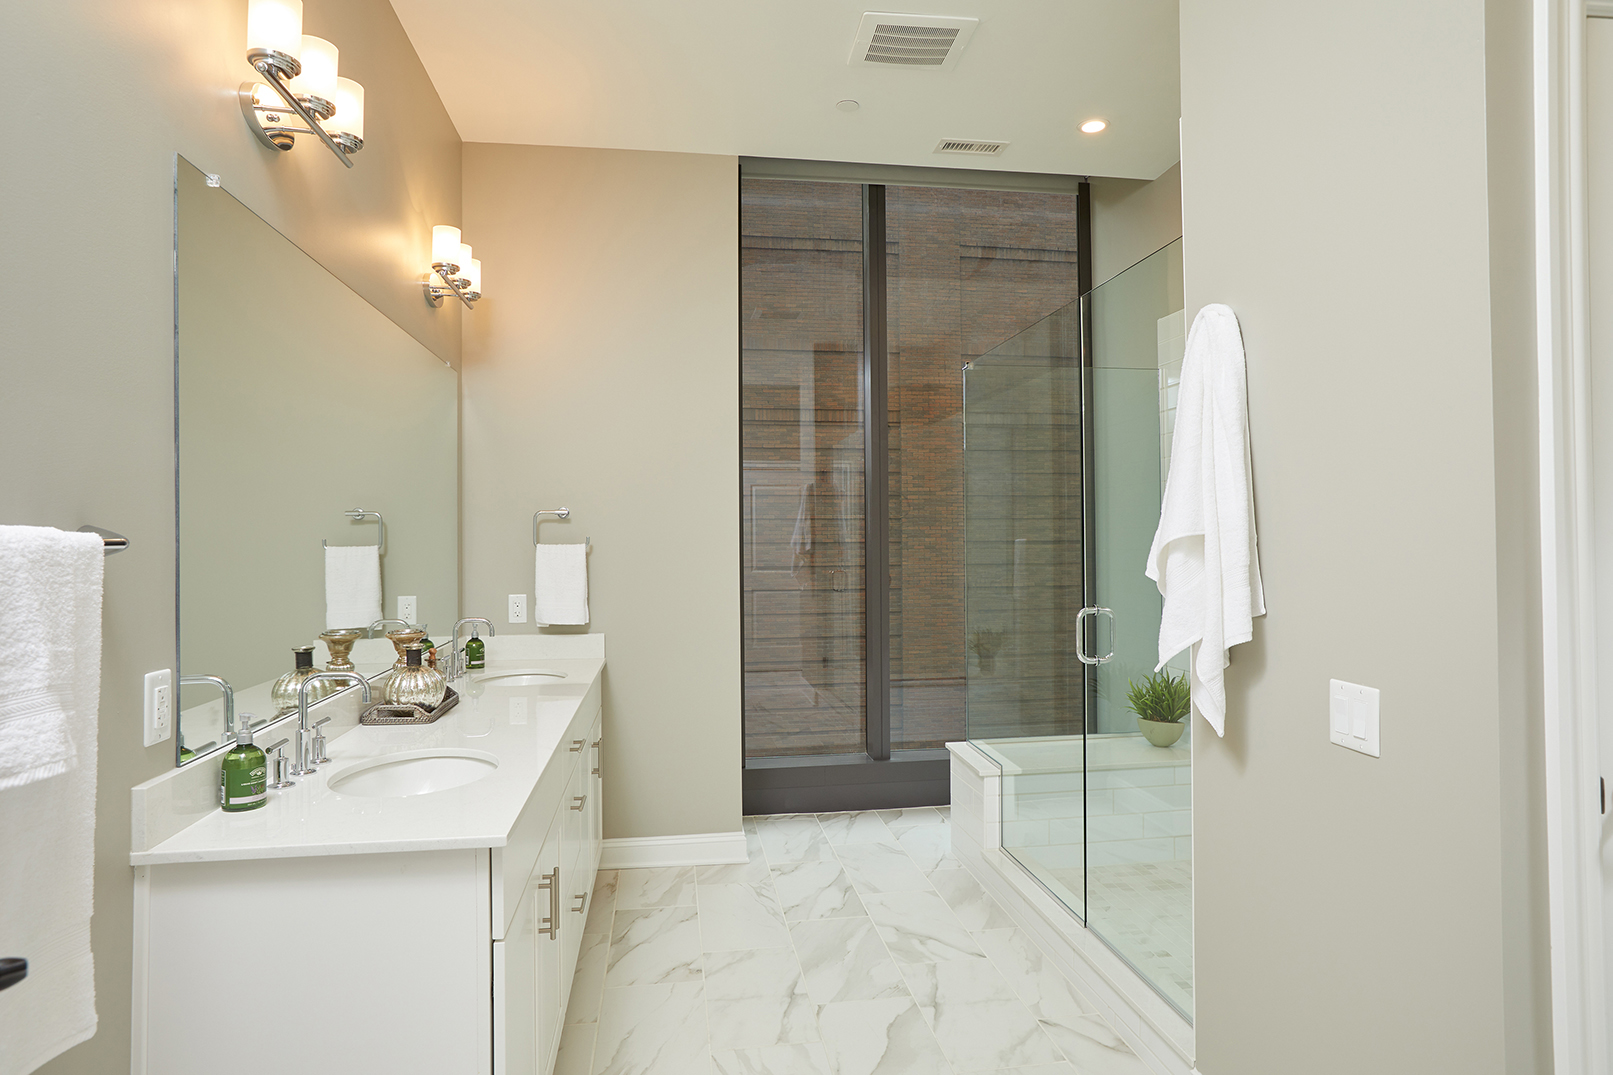 retouched upscale bathroom interior of city apartment